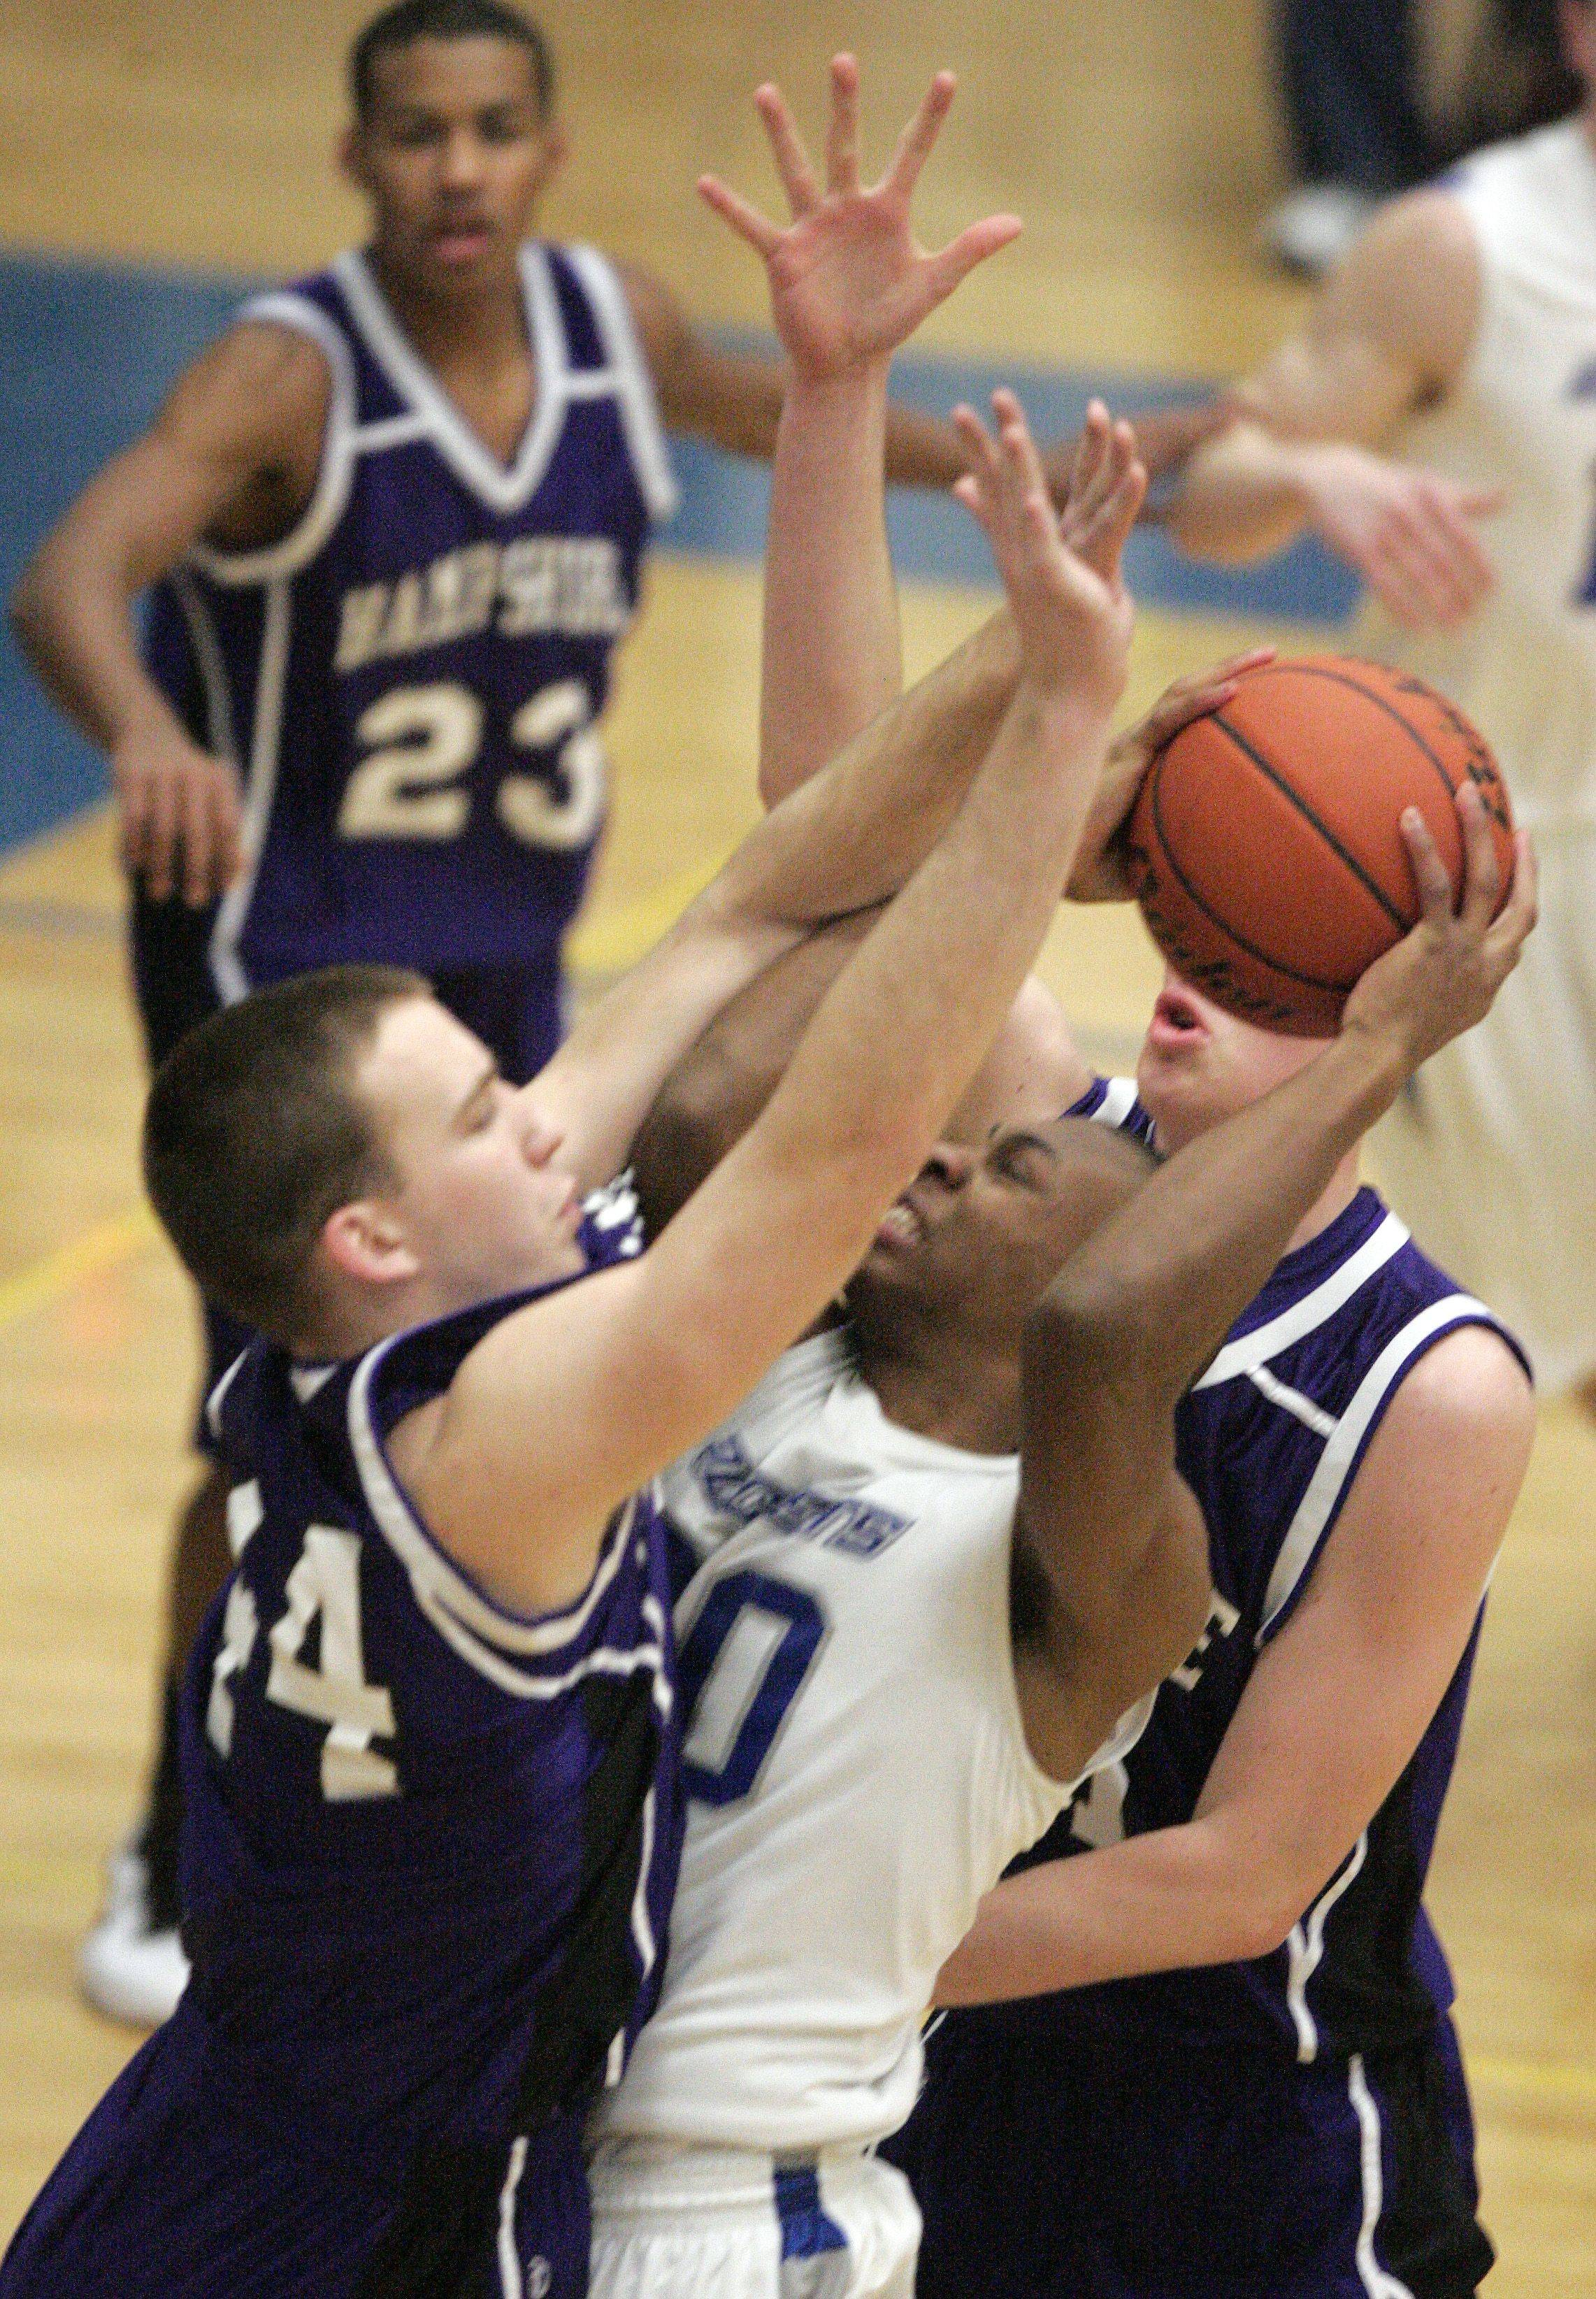 Burlington Central guard Ray Hunnicutt, 20, is sandwiched between Hampshire forward Tyler Watzlawick, left, and Hampshire center Shane Hernandez right Saturday.